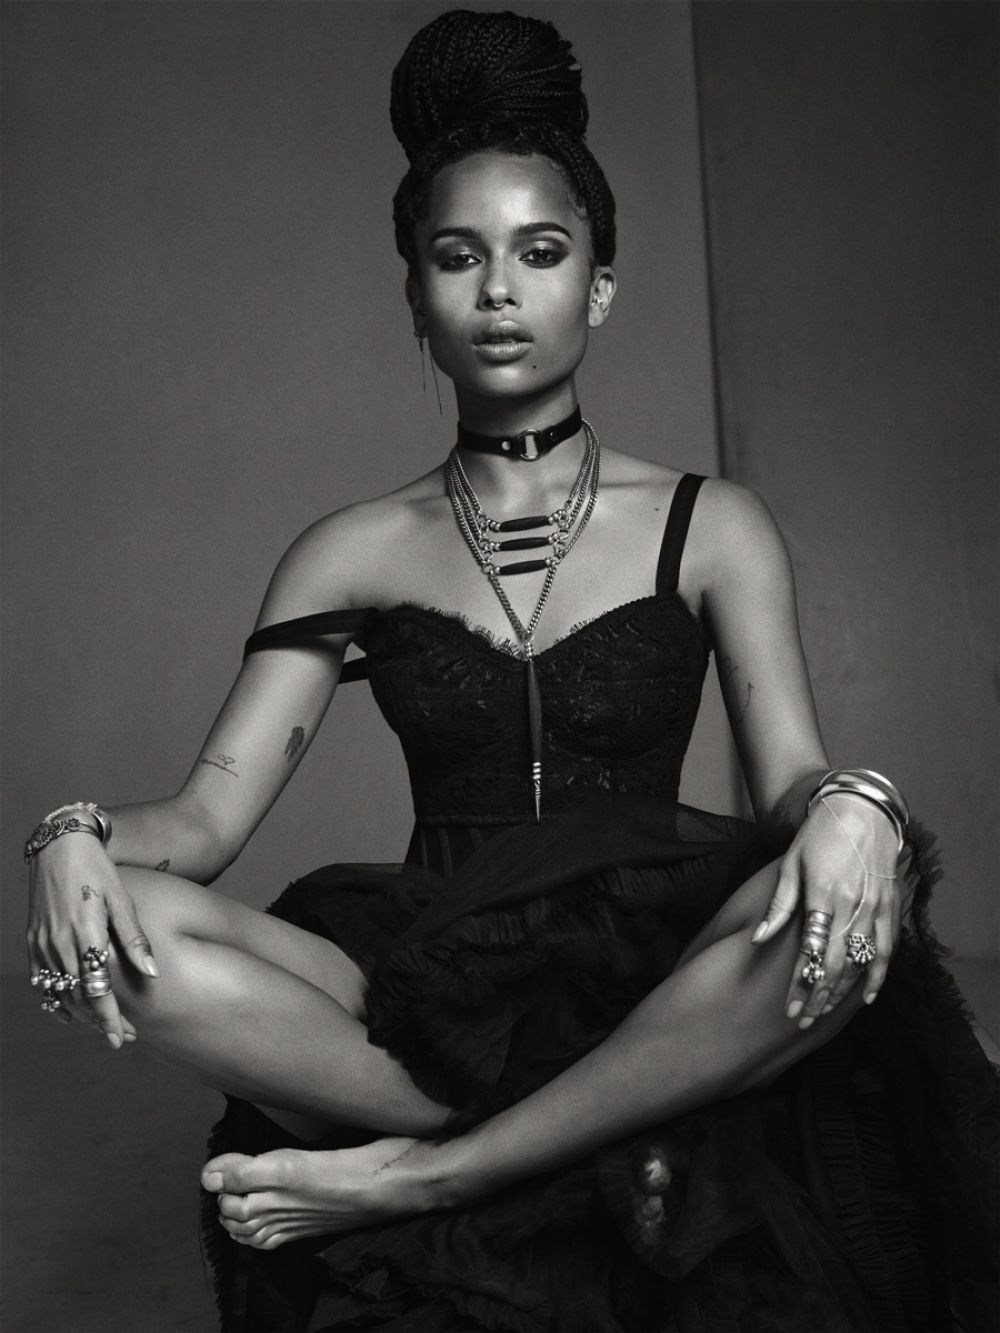 ZOE KRAVITZ in Flaunt Magazine